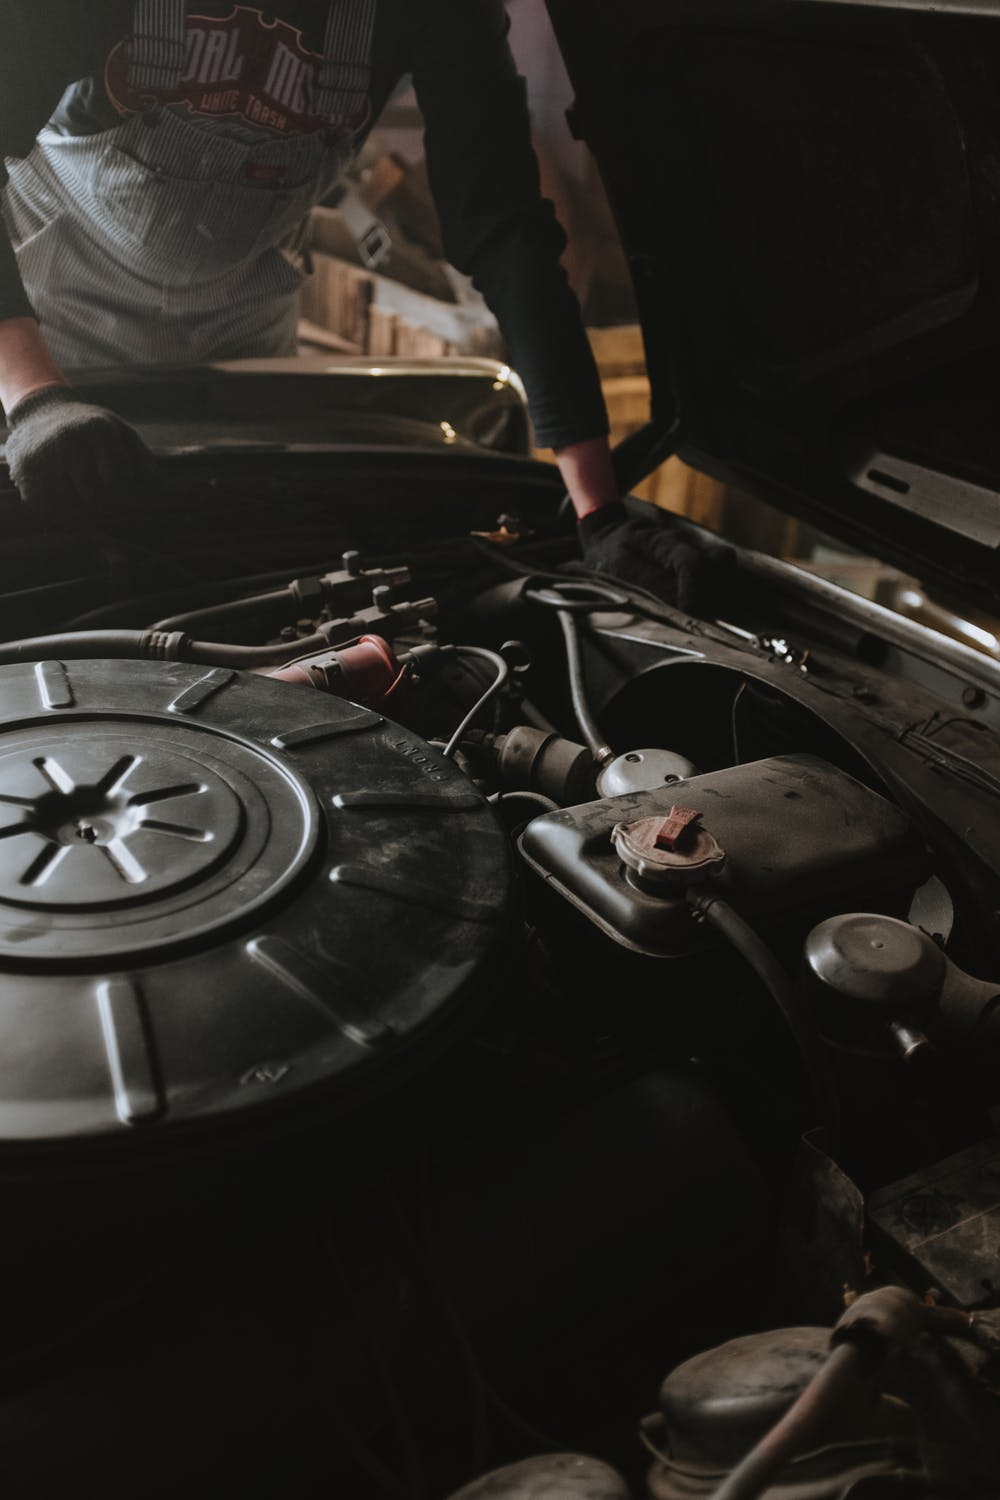 Stock photo of a car engine by cottonbro on Pexels